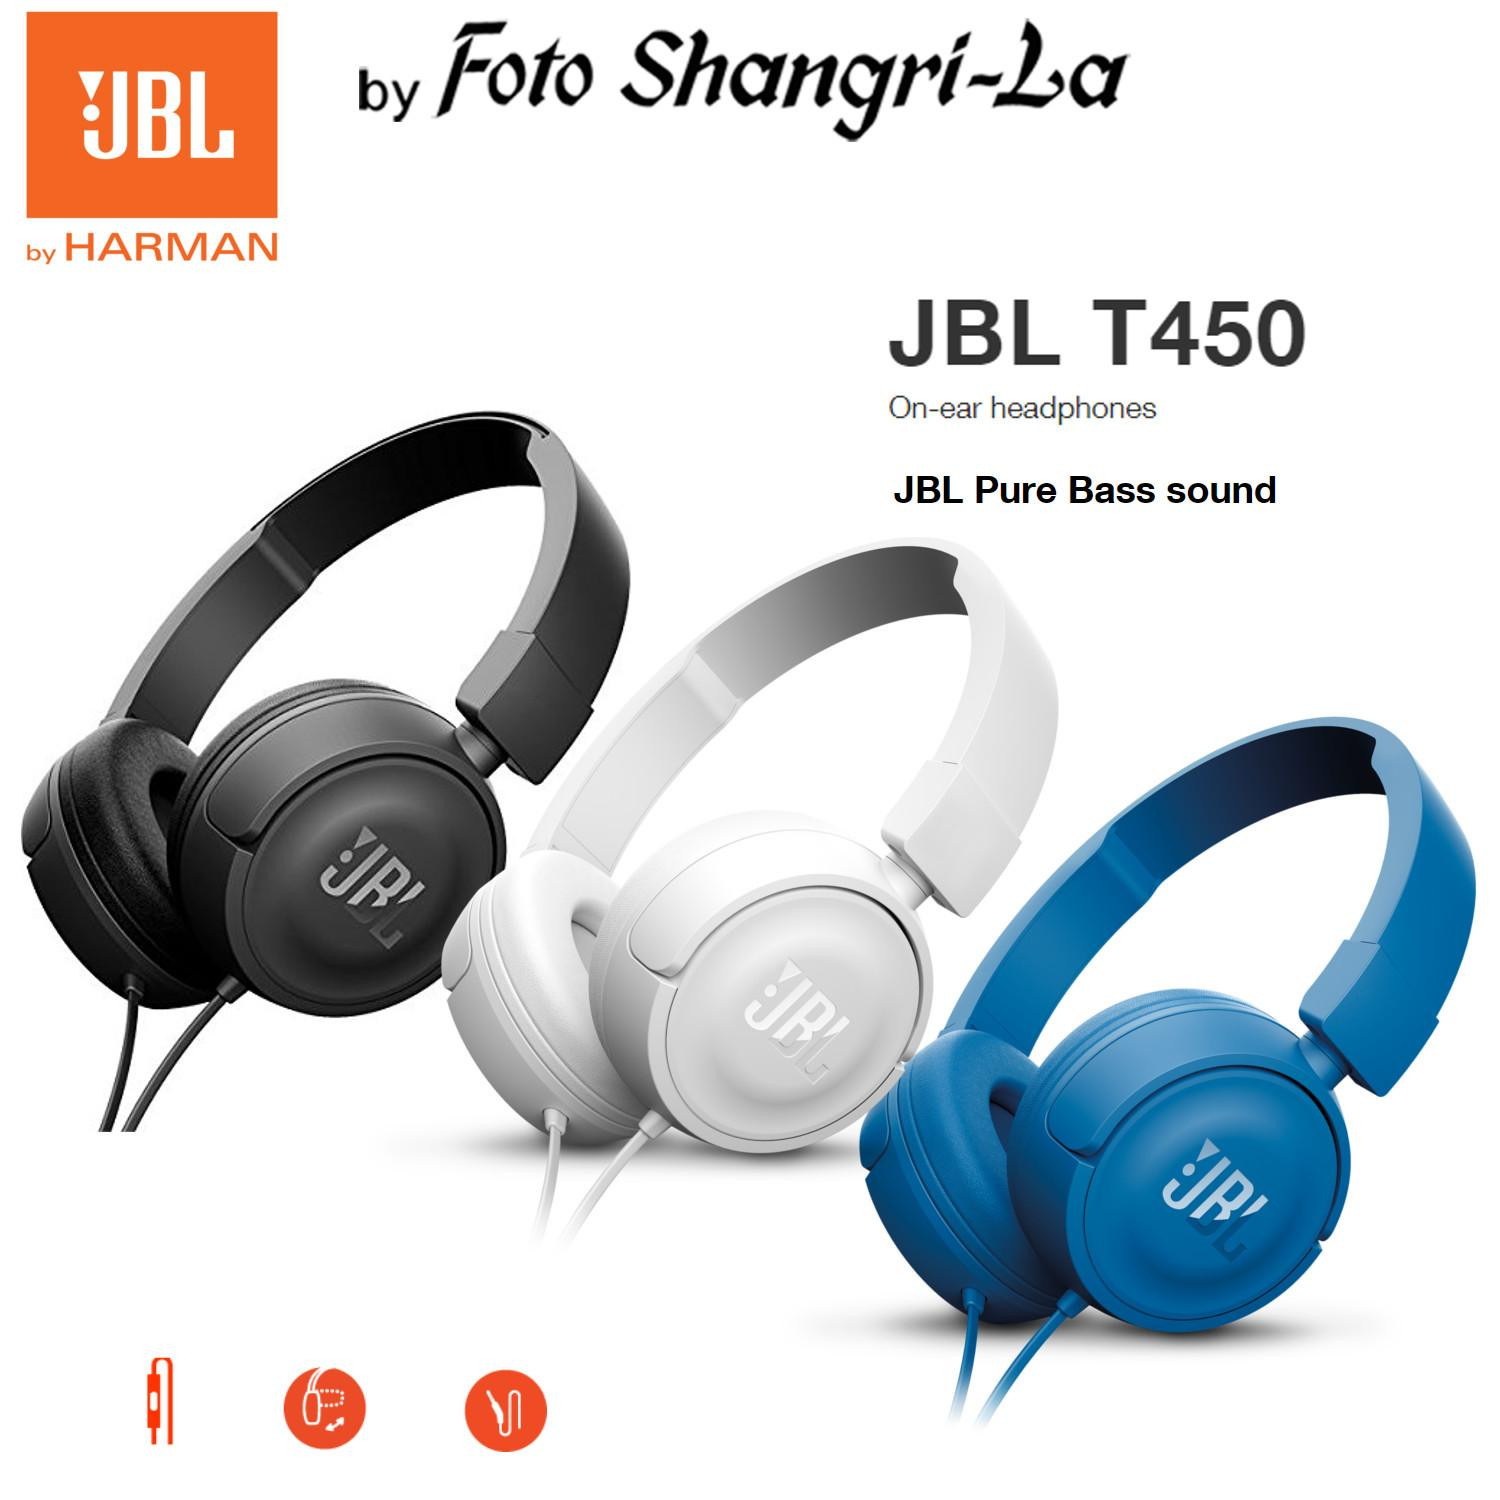 514d859c144 JBL T450 On-Ear Headphones Headsets Pure Bass Sound with Microphone Answer  Cal. ‹ ›